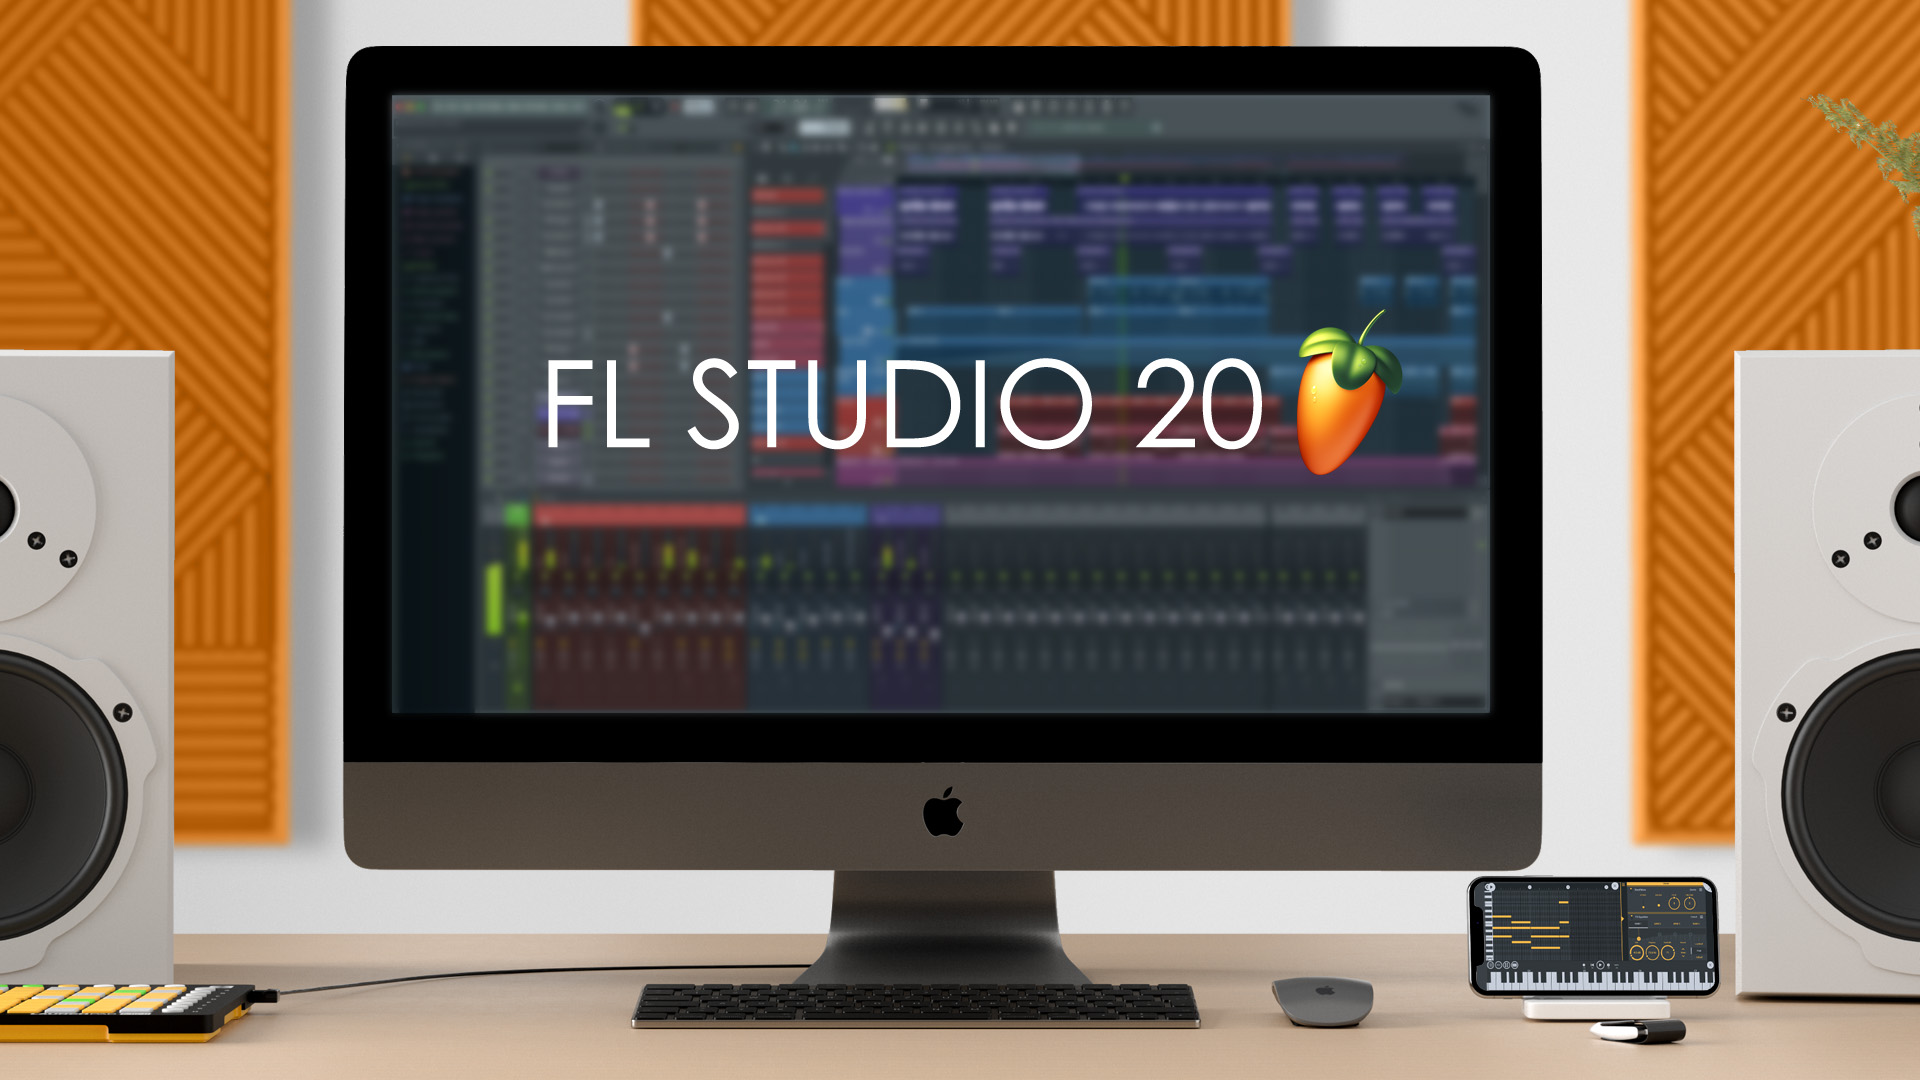 FL STUDIO 20 Released!